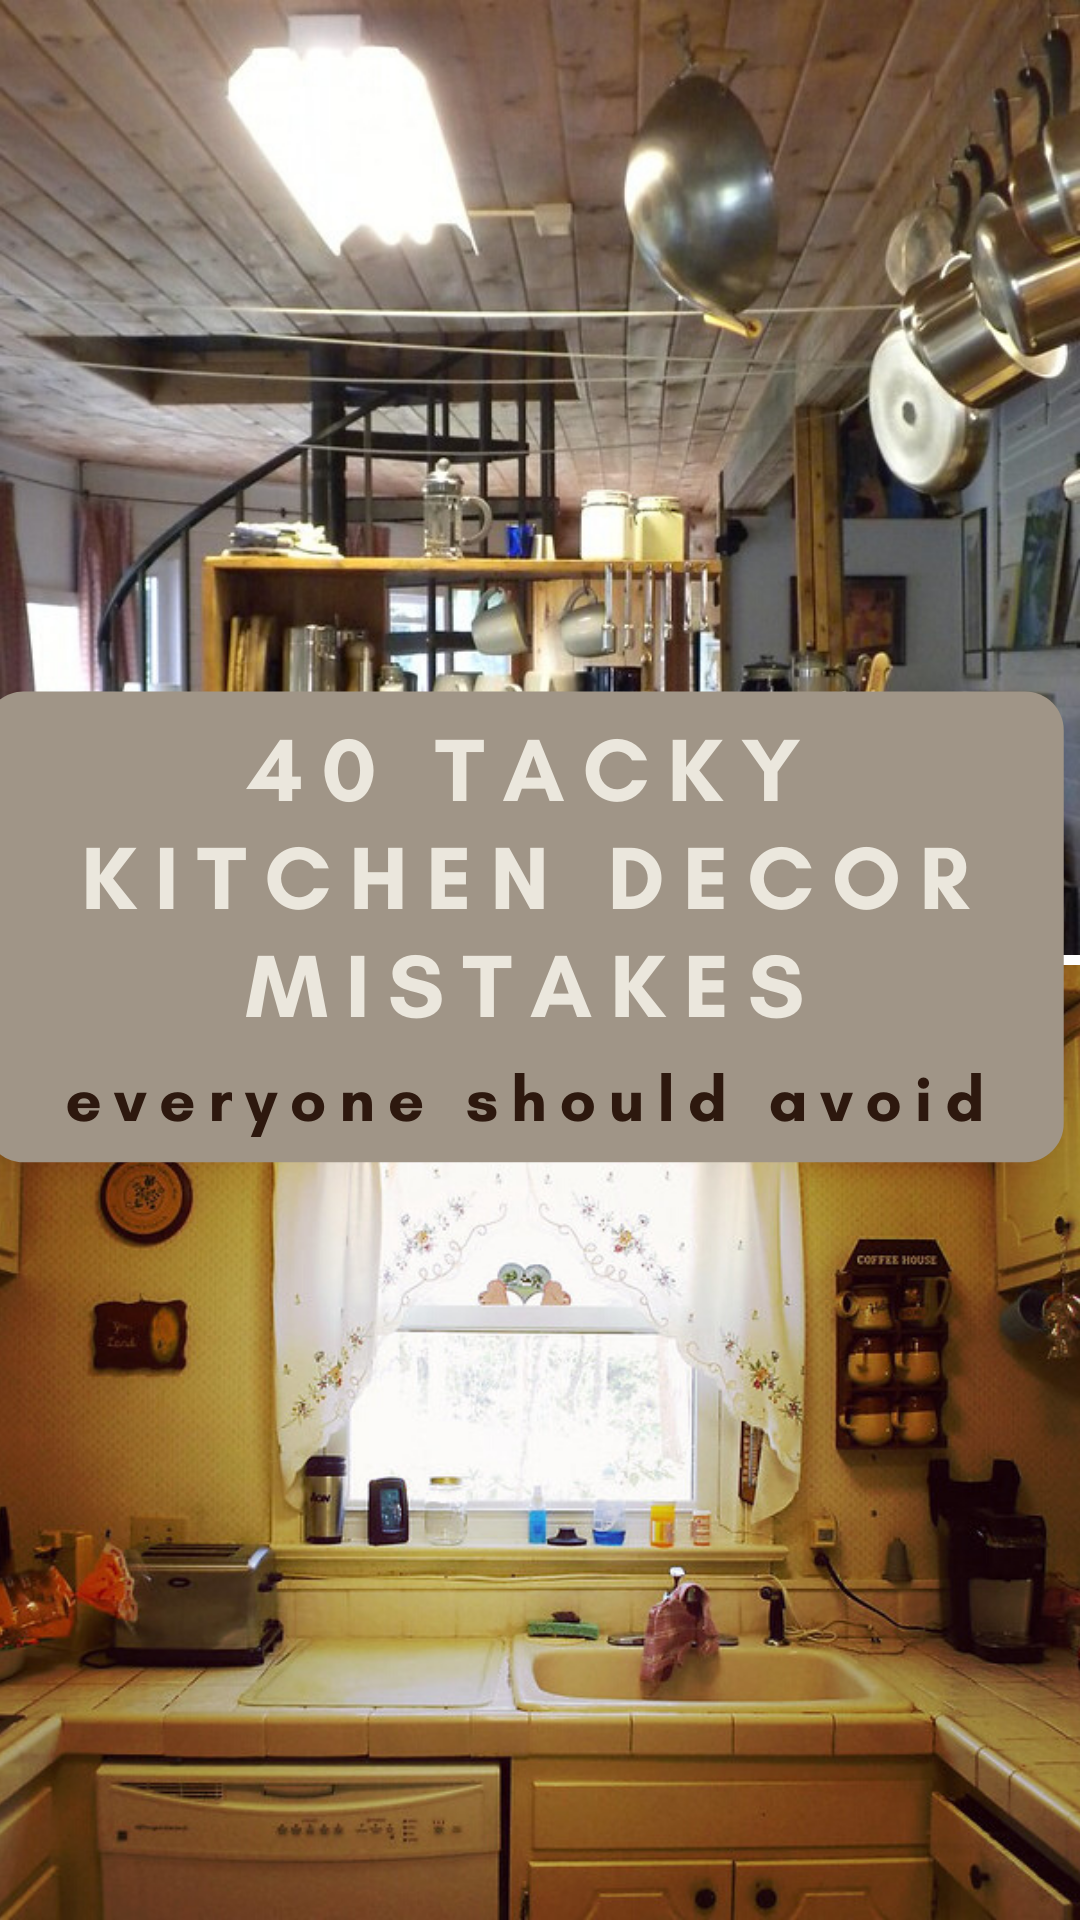 40 Tacky Kitchen Decor Mistakes Everyone Should Avoid Kitchen Decor Apartment Kitchen Decor Design Your Kitchen